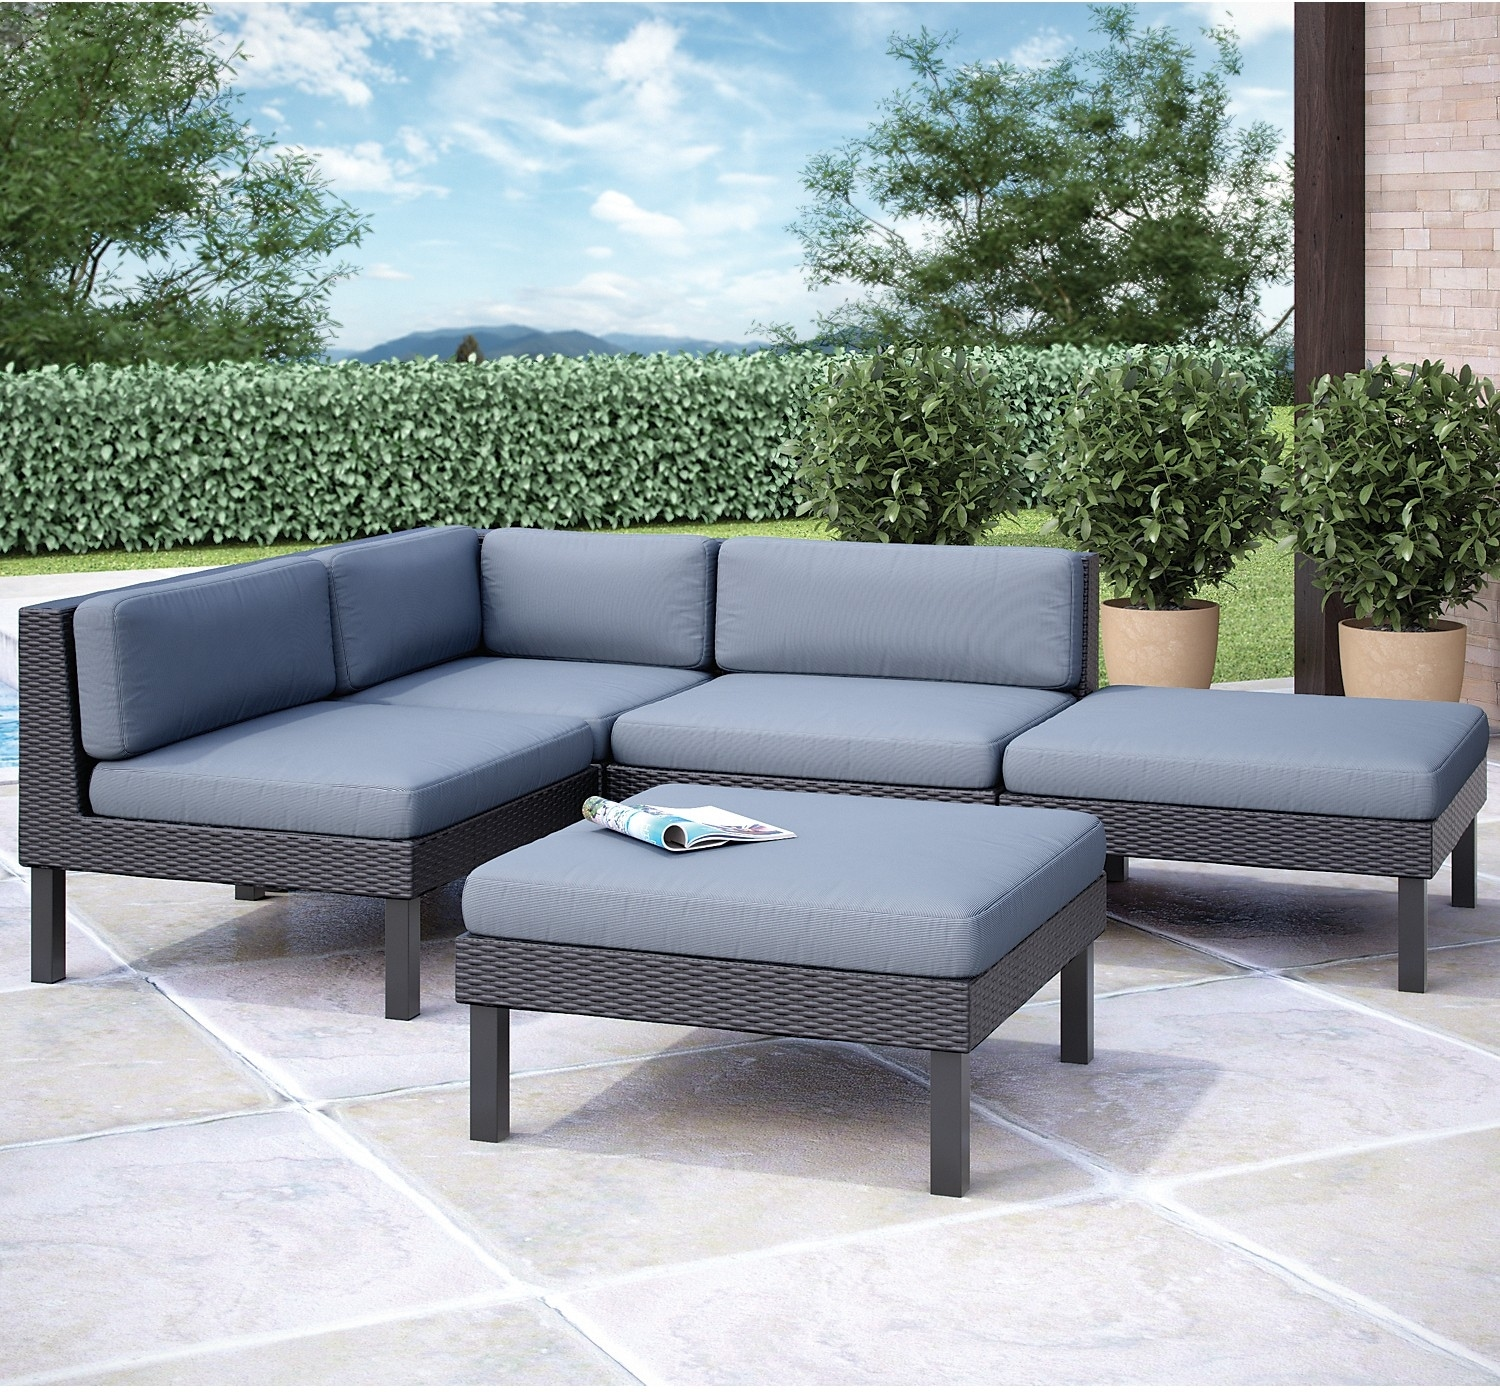 Oakland 5 piece sectional with chaise black the brick for Black sectional with chaise